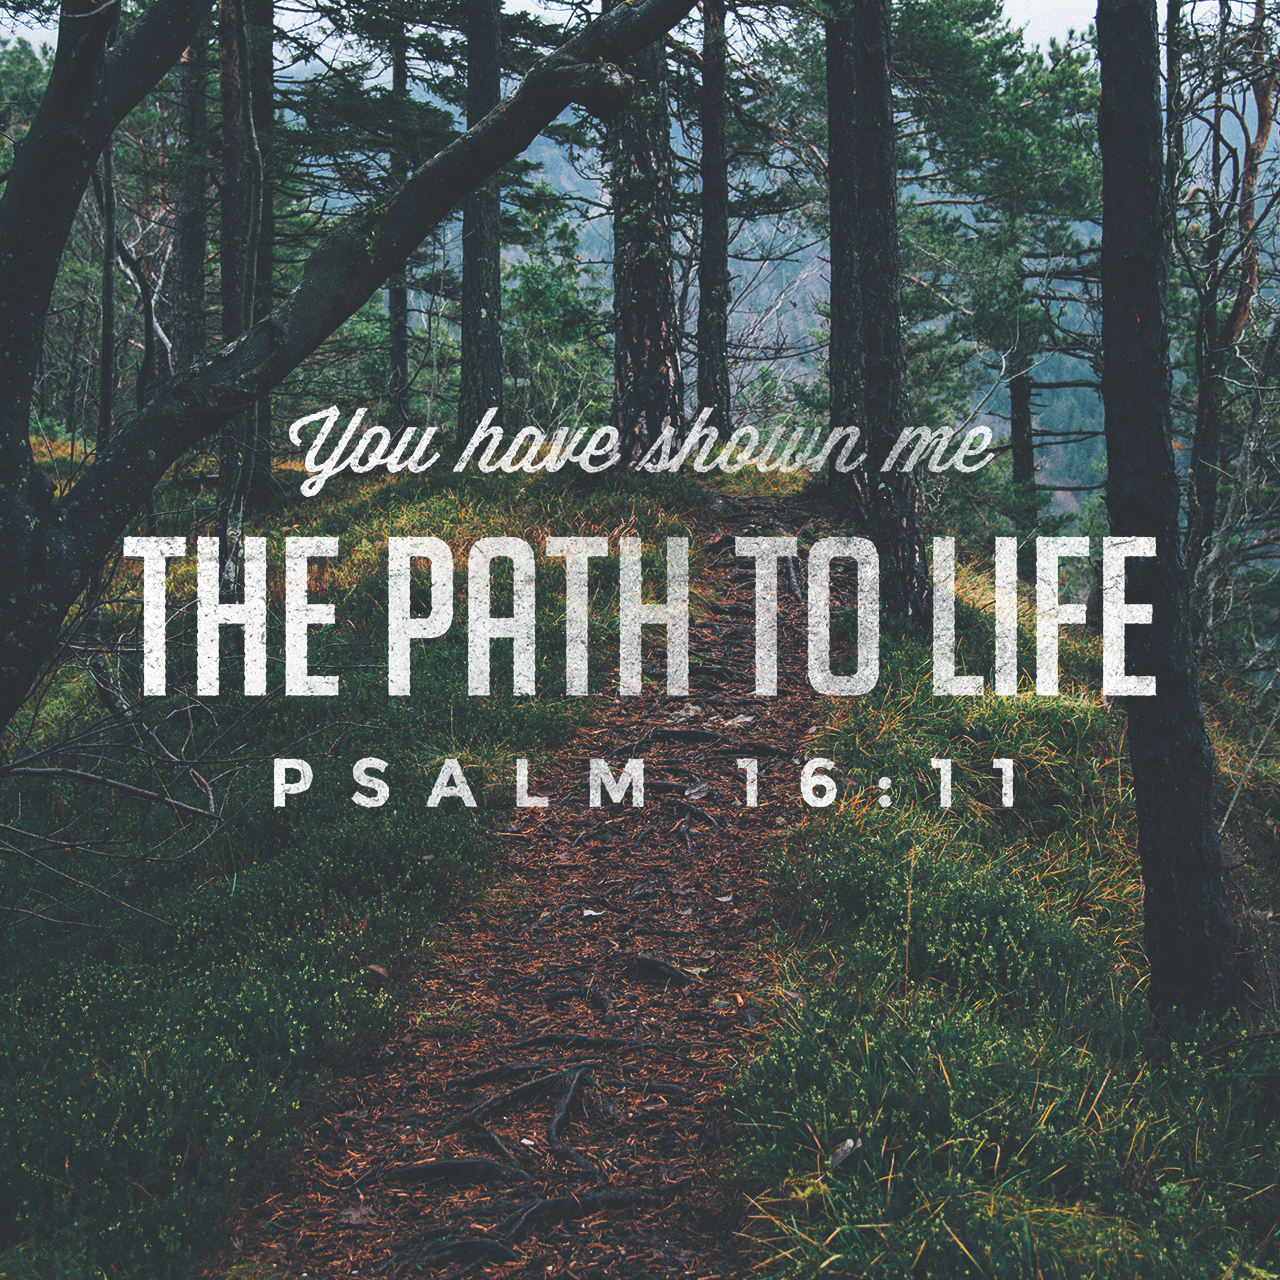 Image result for psalm 16:11